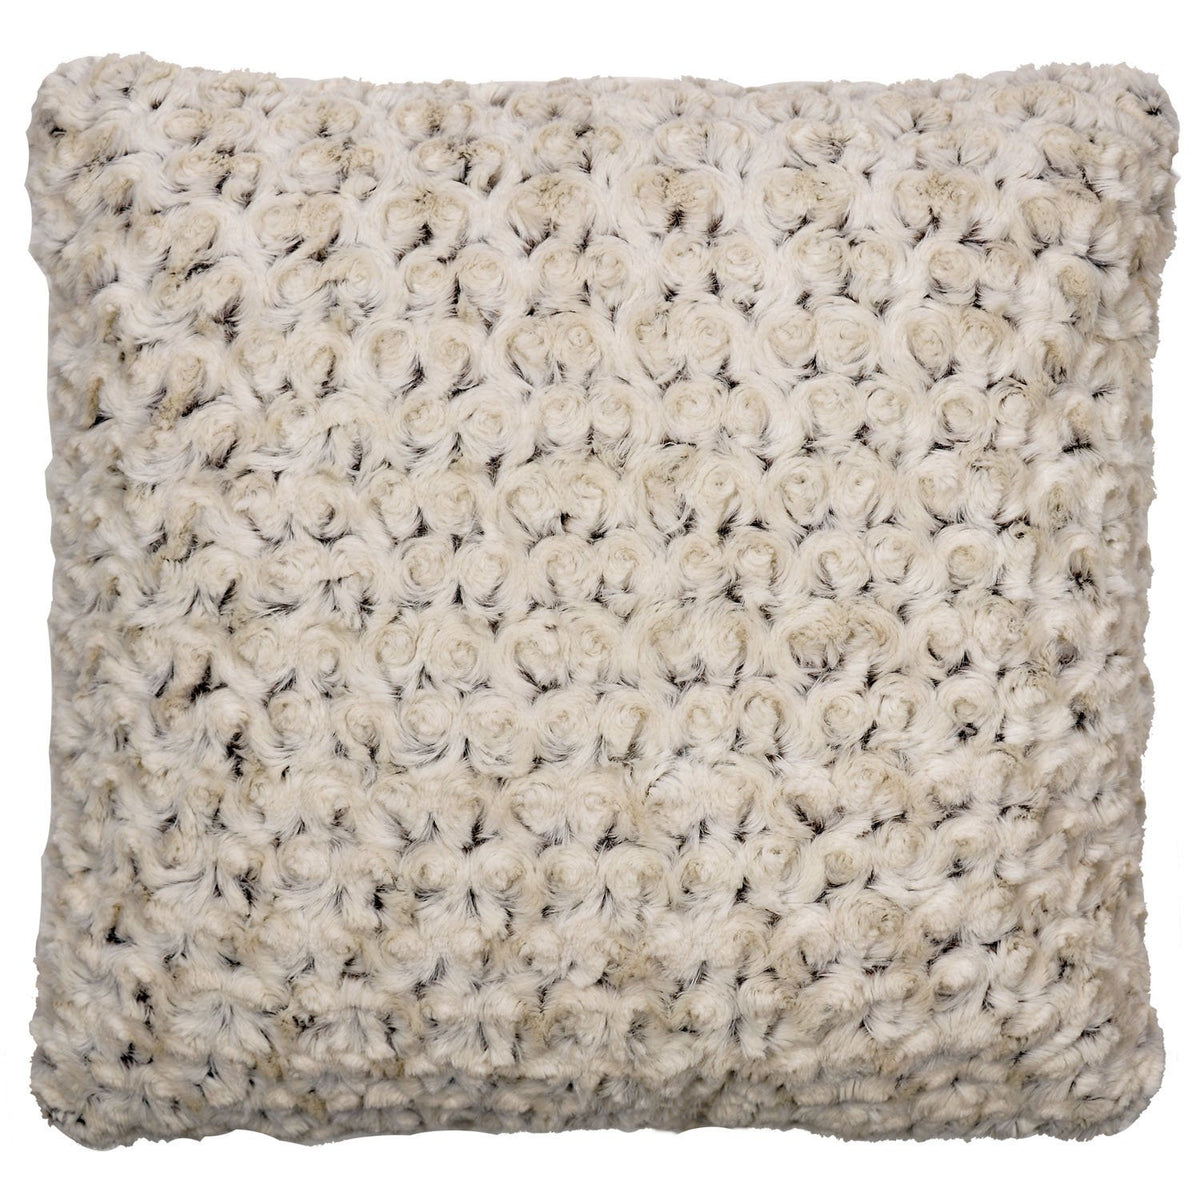 Pillow Sham - Rosebud Faux Fur